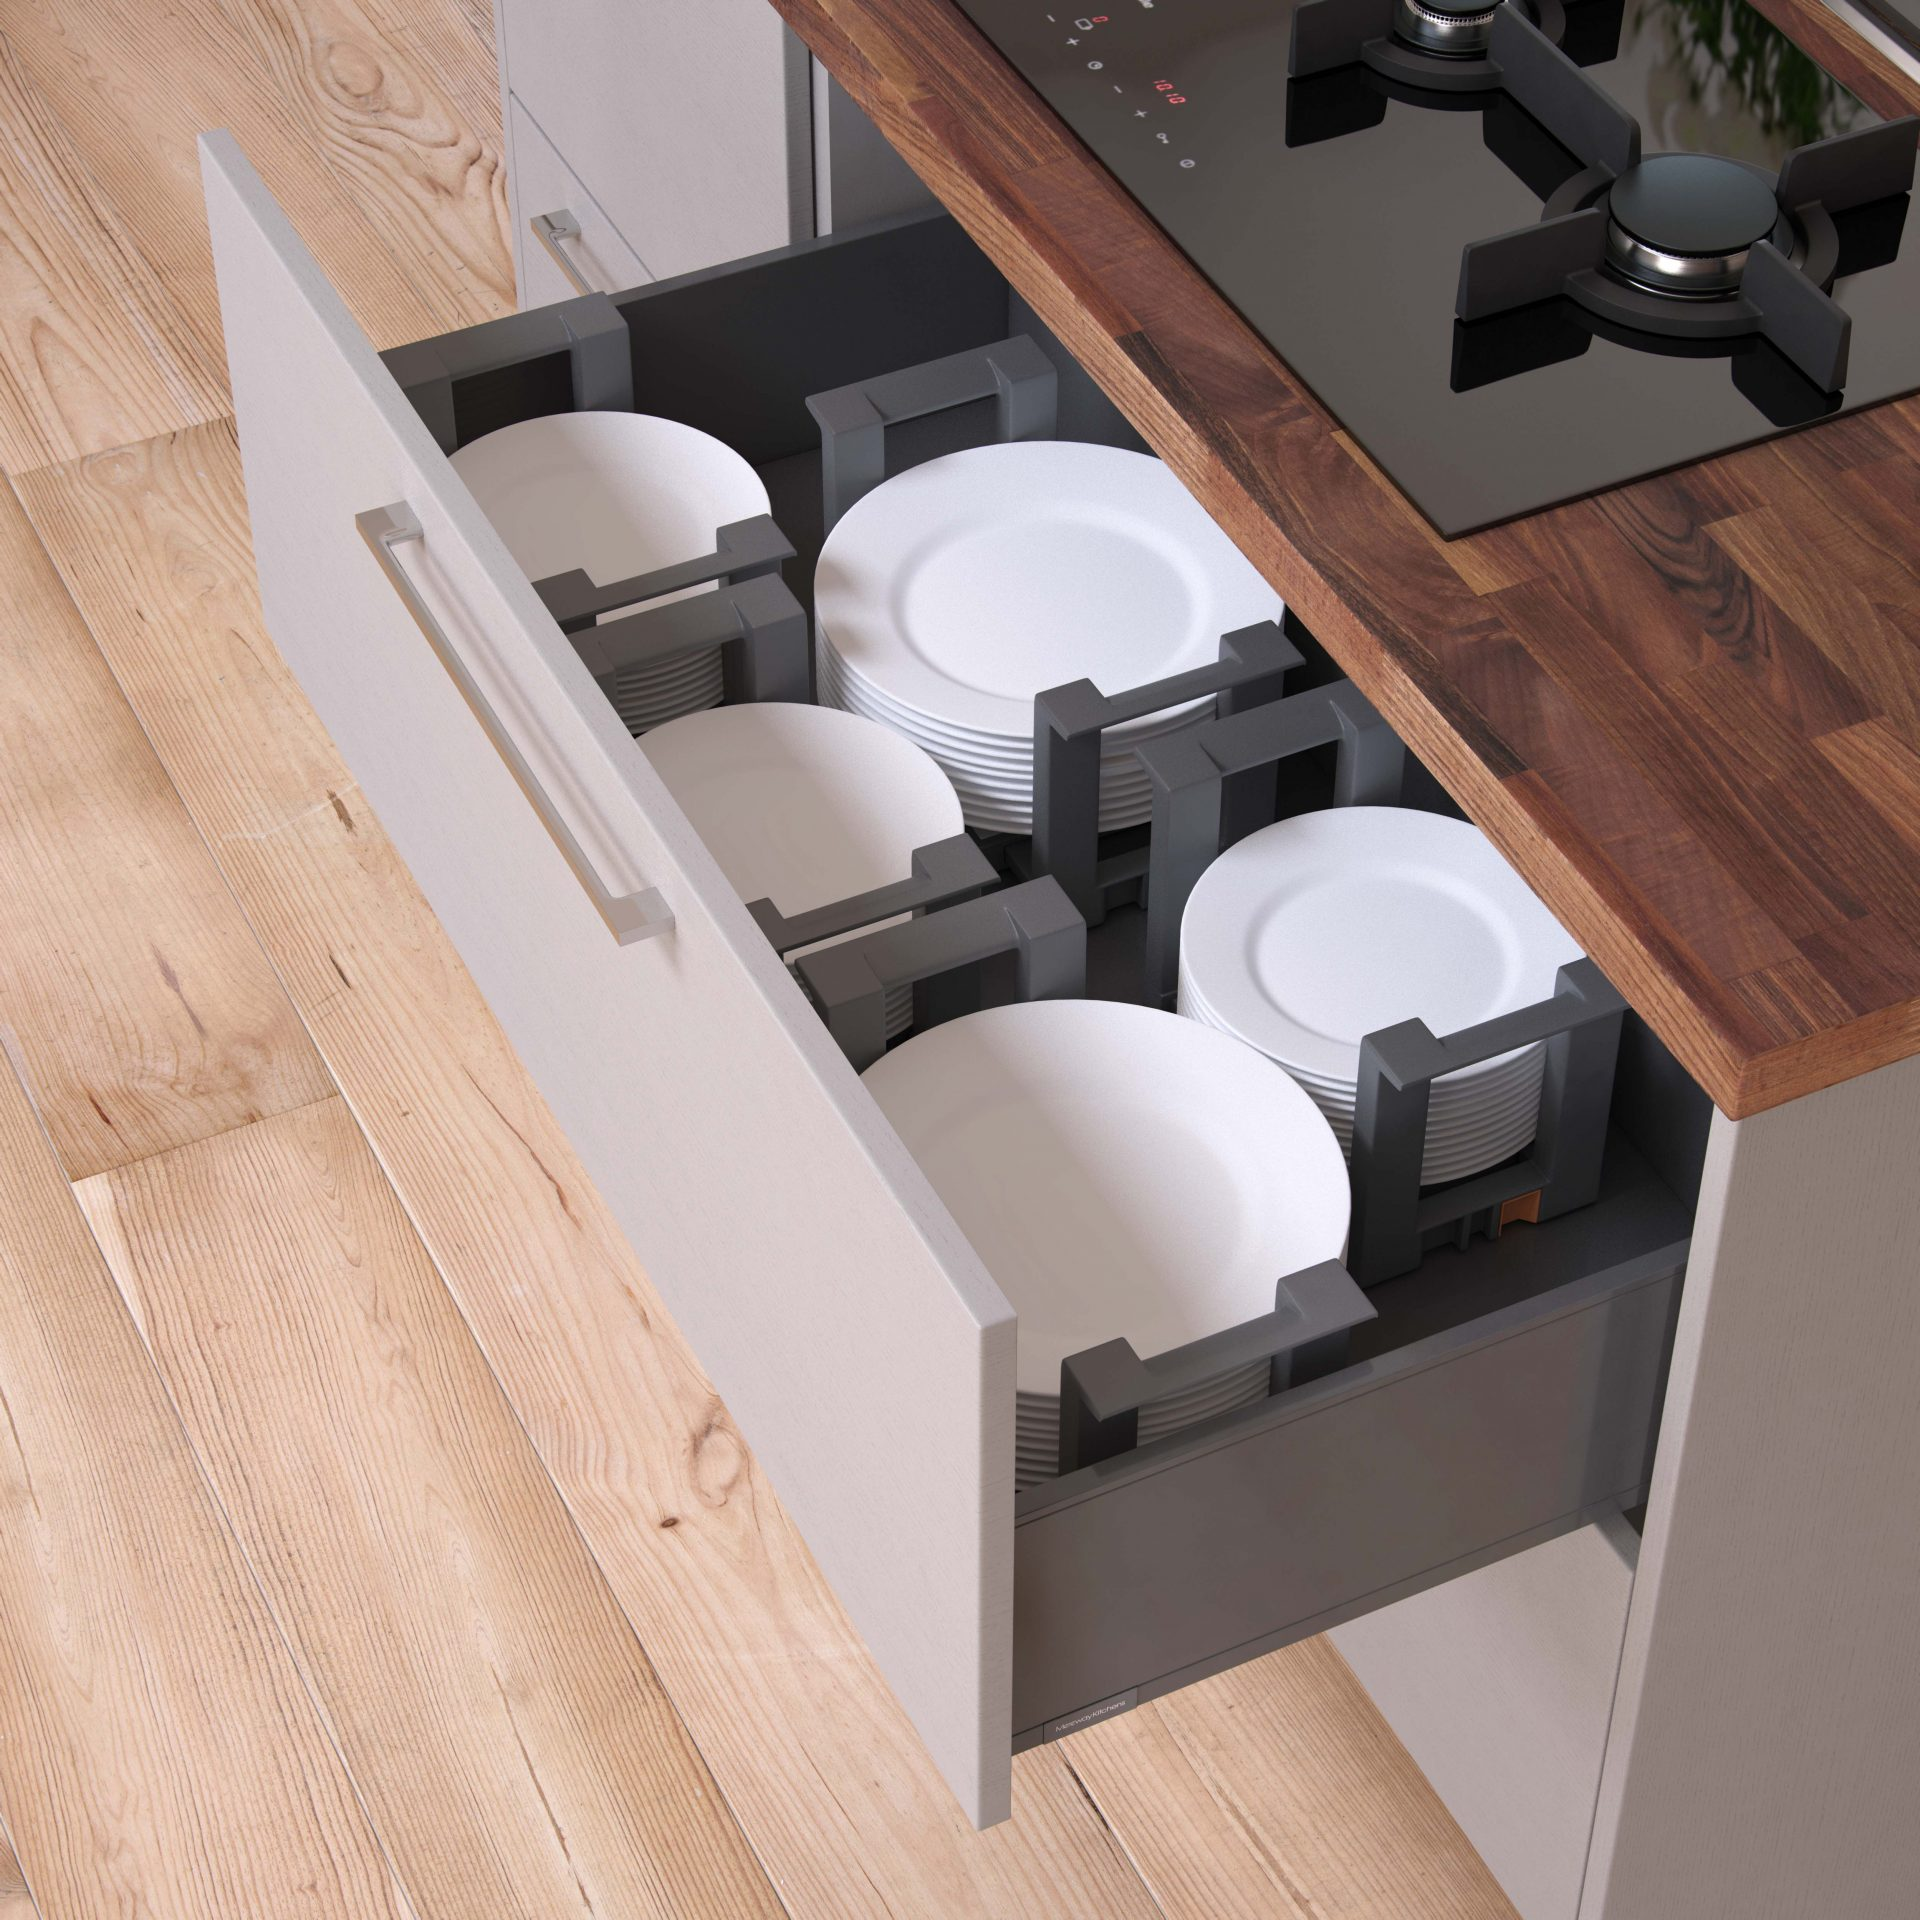 Standard White Pan Drawer with Recyling Bin Packs and Plate Holders